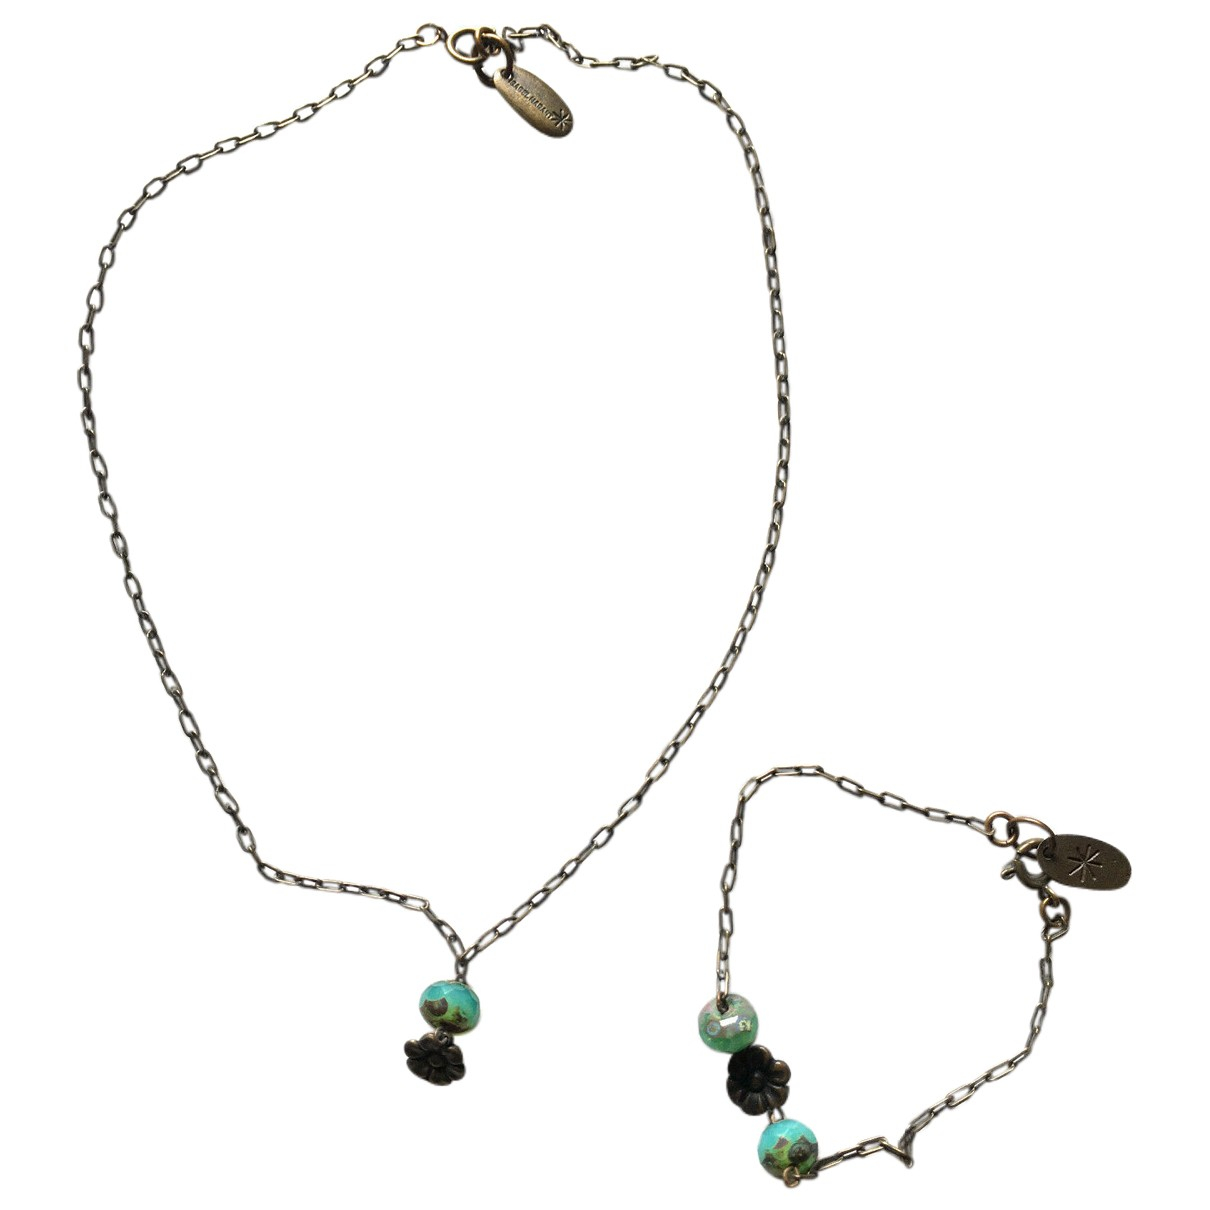 Isabel Marant \N Turquoise Metal necklace for Women \N